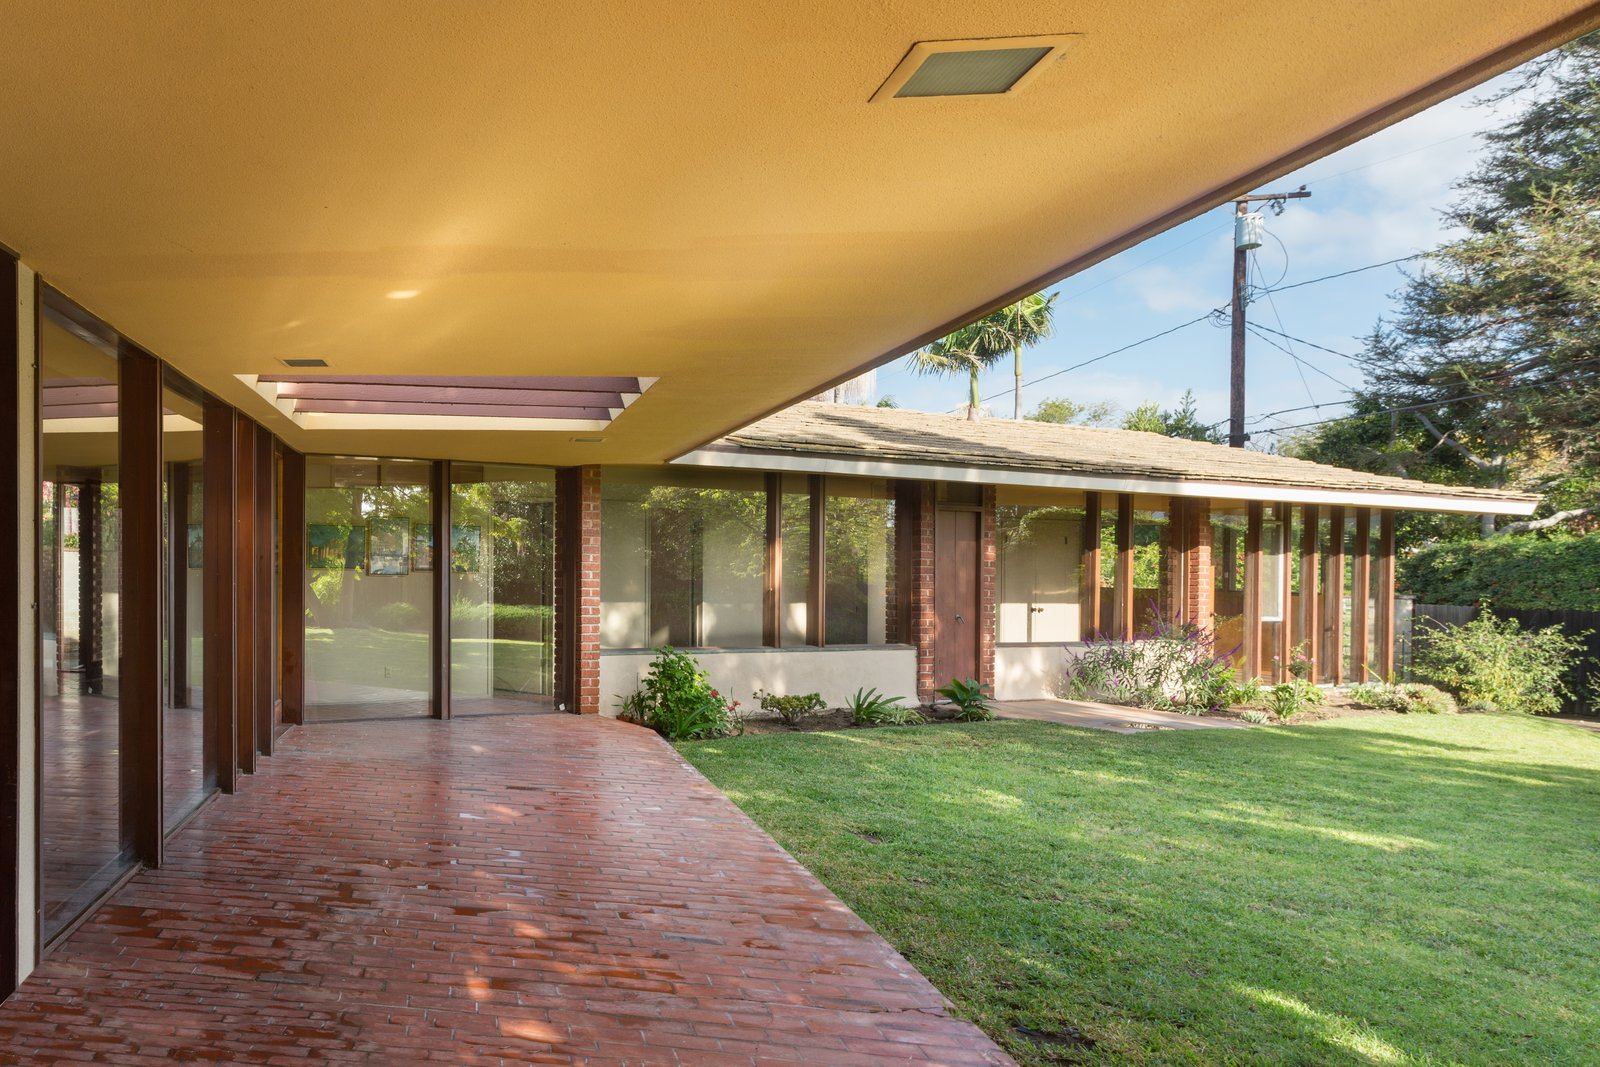 Outdoor, Back Yard, Stone Patio, Porch, Deck, and Grass  Photo 6 of 6 in A Pristine John Lautner Home in Long Beach Is Available For the First Time